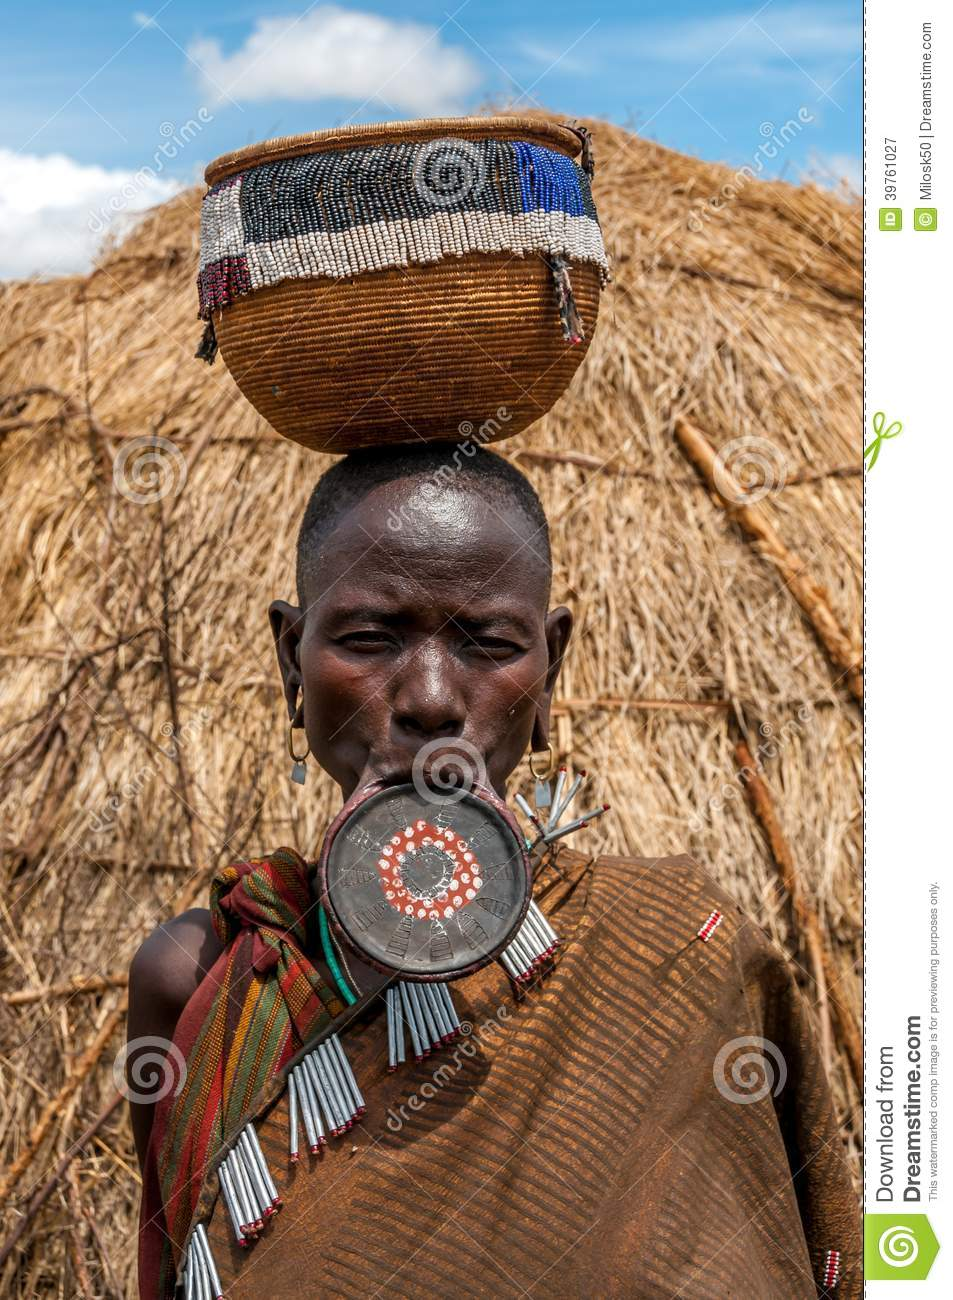 Omo Valley people - Mursi woman with lip plate  sc 1 st  Dreamstime.com & Omo Valley People - Mursi Woman With Lip Plate Editorial Photography ...